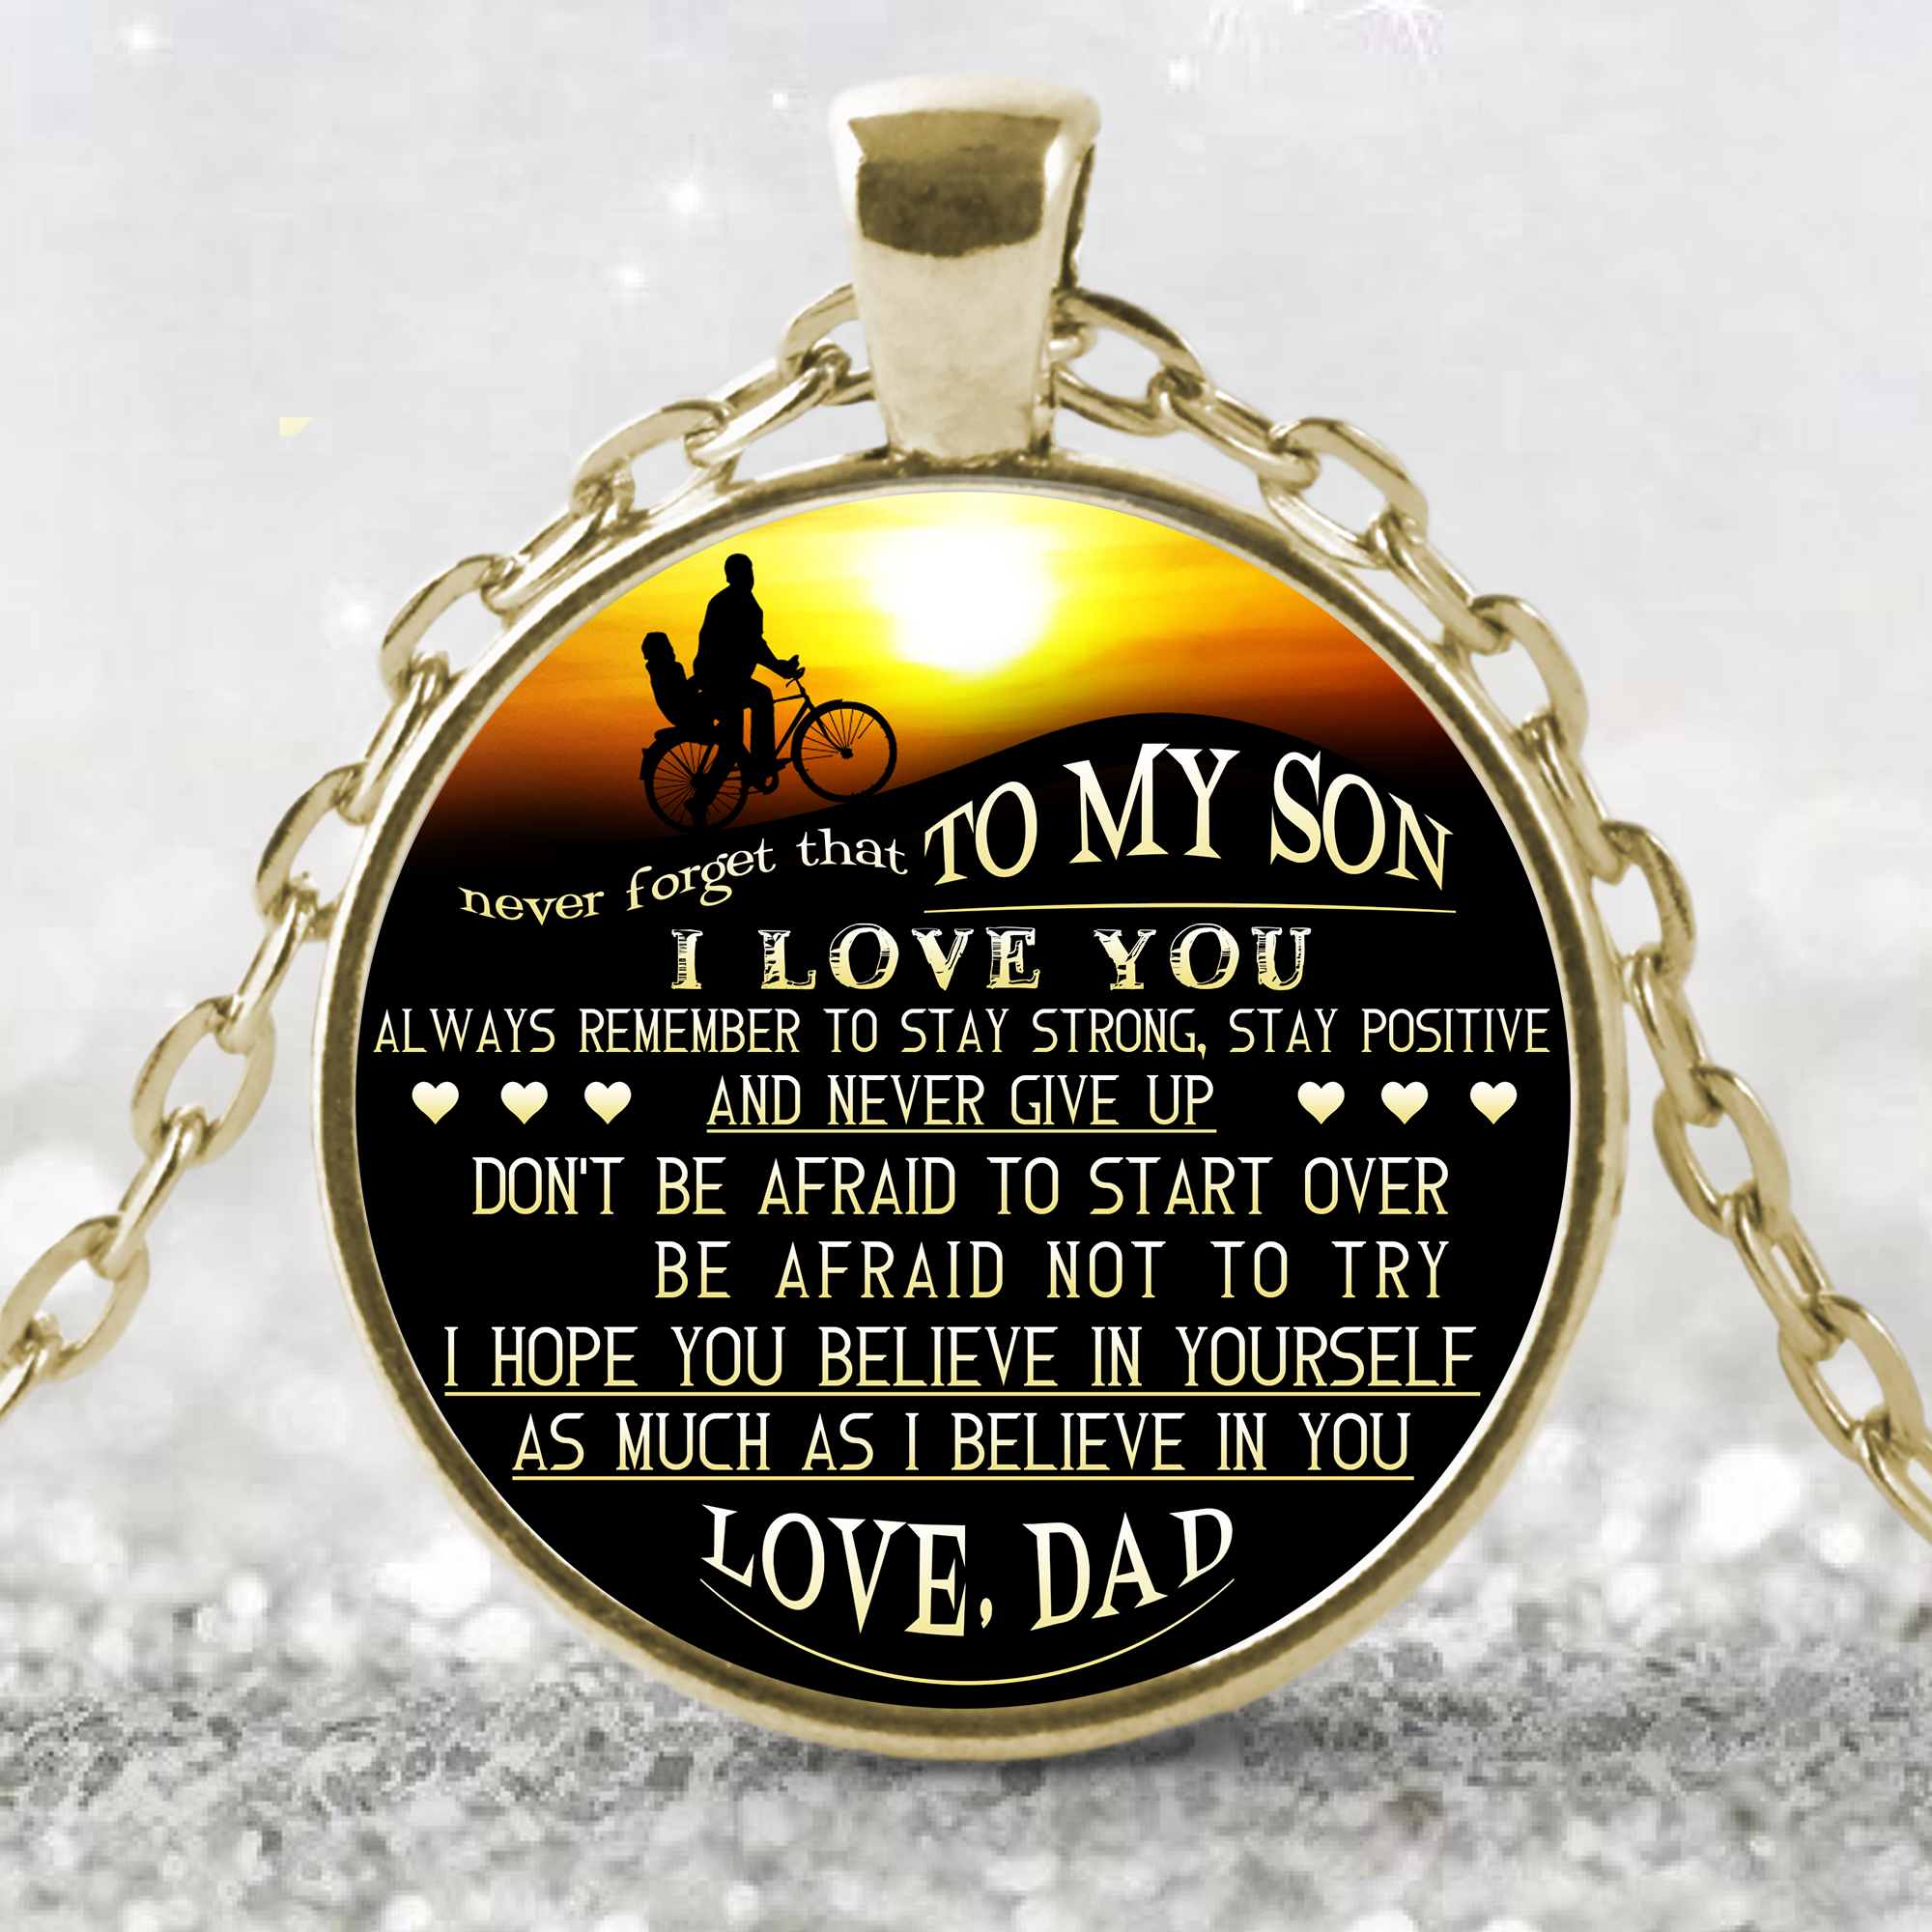 To My Son Necklace Necklaceto Giftbest